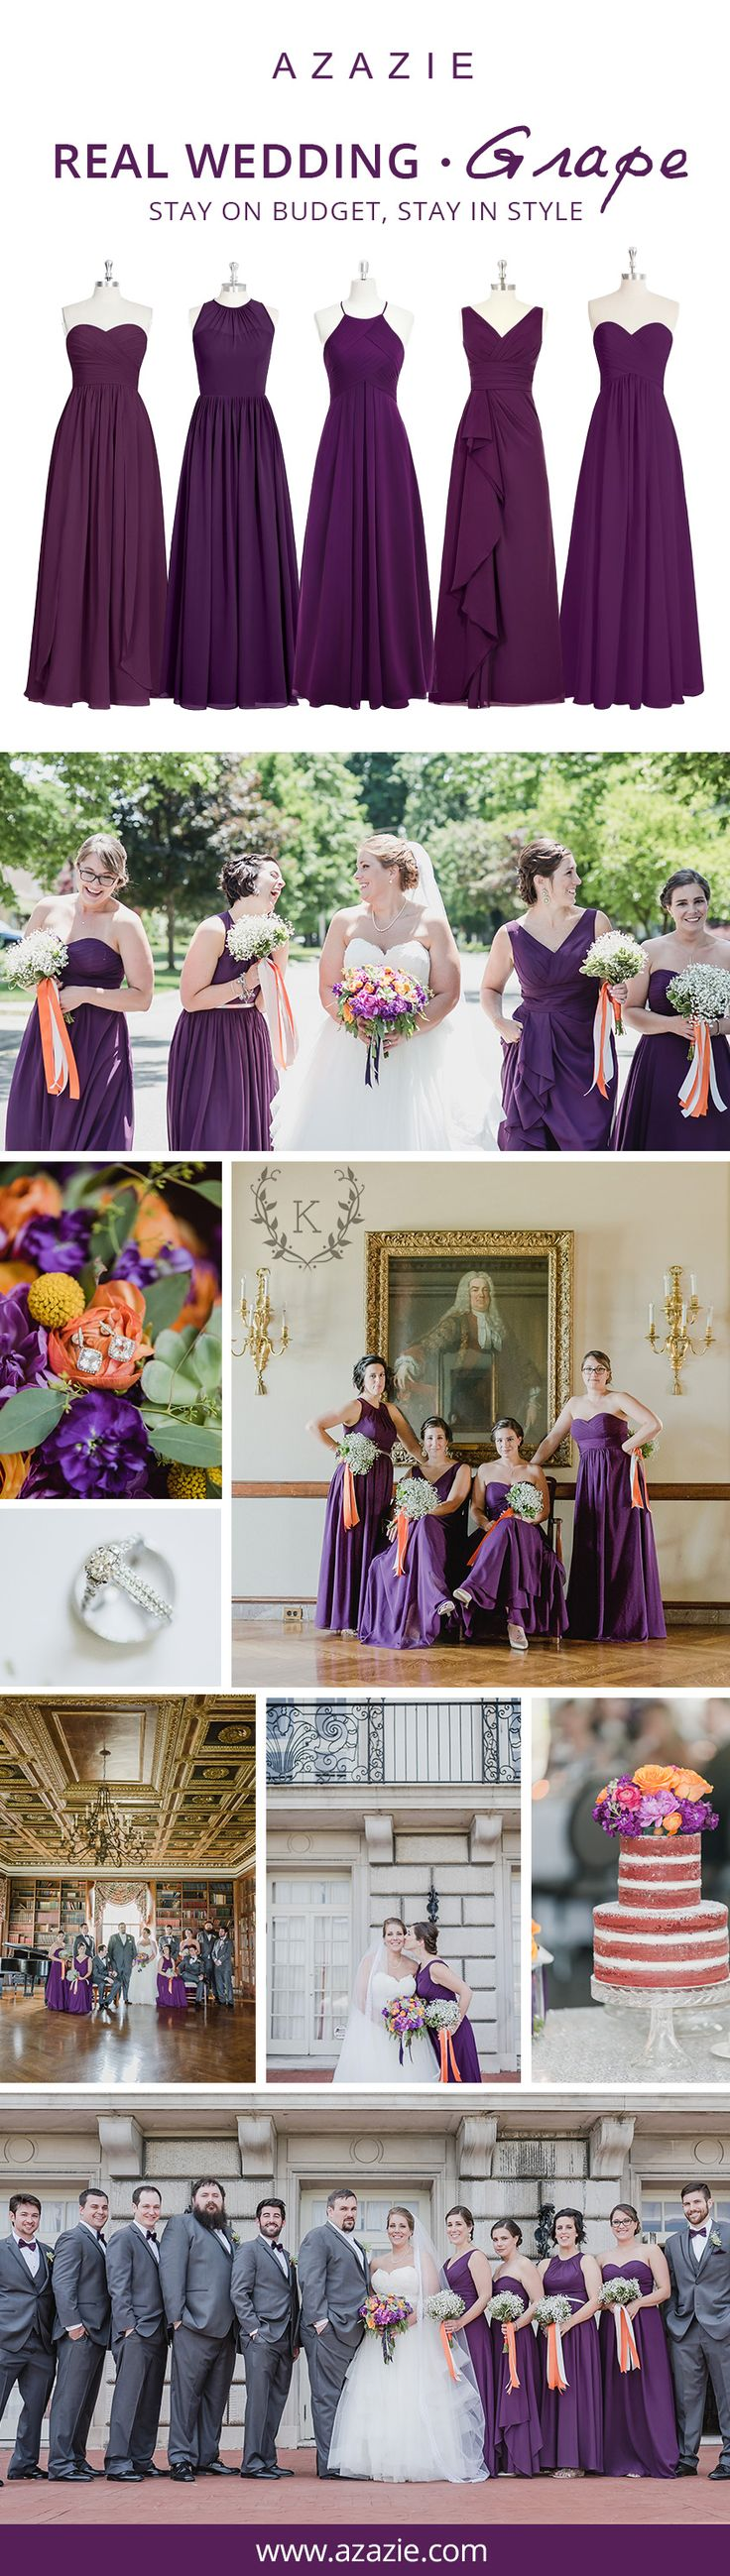 The epitome of romance and just like a fine wine, Grape is one of the most popular colors this Fall season. Get inspiration for your Autumn wedding with this glamorous Grape color for your bridesmaids. Even better let your girls choose from over 150 styles and mix-and-match, all for $150 per gown or less!| Photos courtesy of karidawson.com